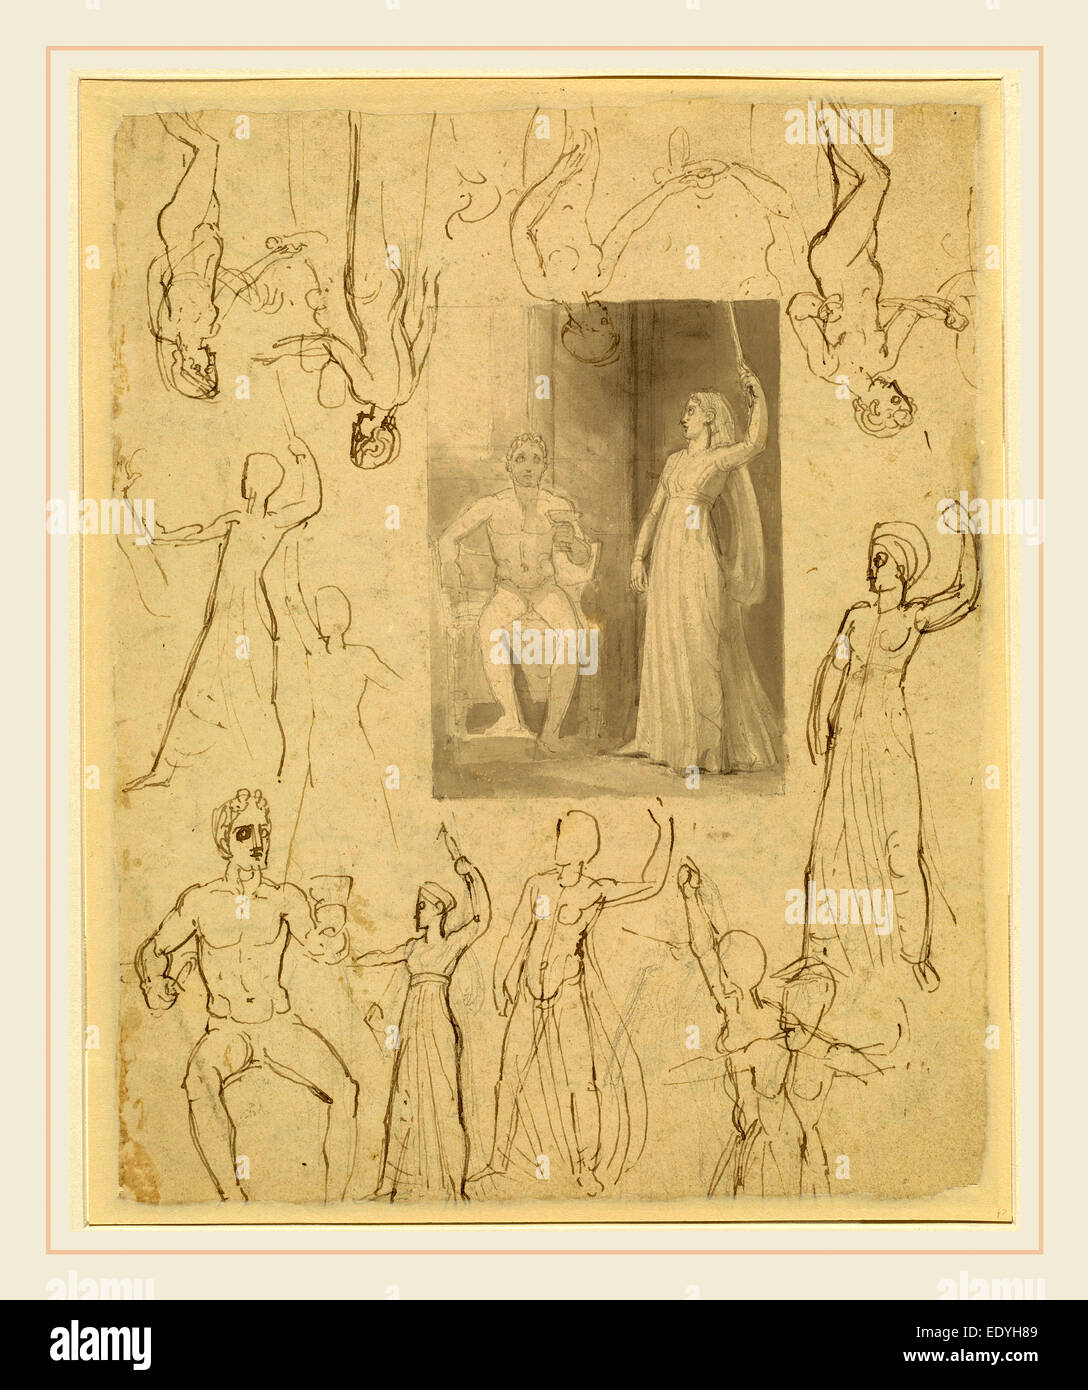 Thomas Stothard, Design for a Book Illustration and Related Studies [recto], British, 1755-1834, pen and gray and - Stock Image